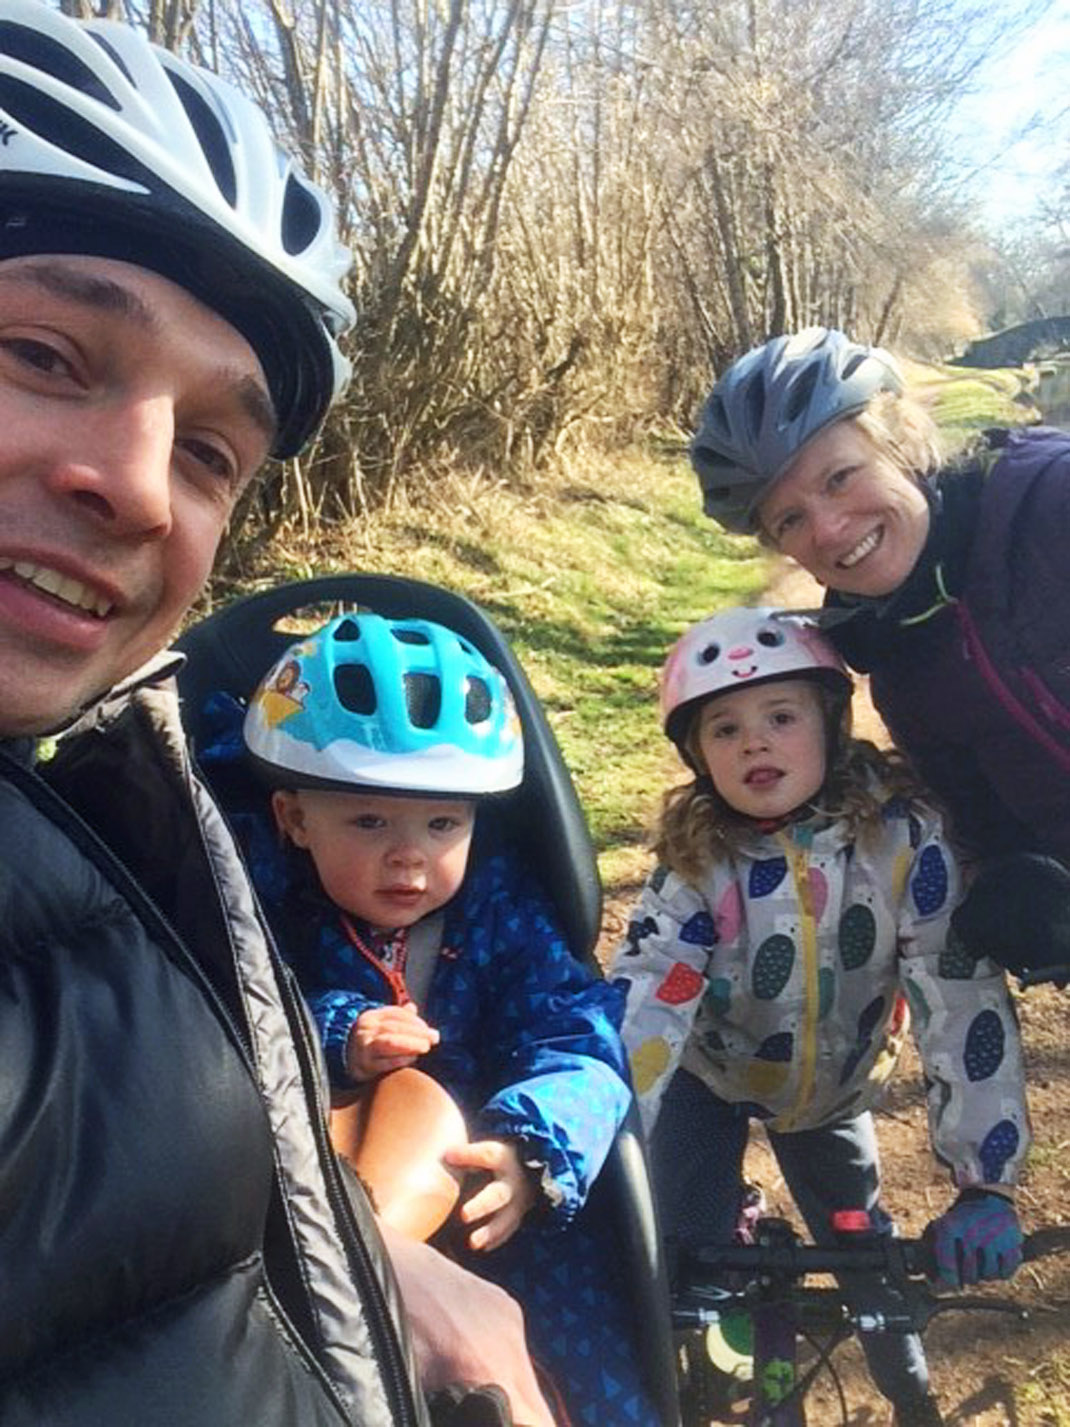 Cycling Holiday Business Dream Comes True For Mid Wales Couple